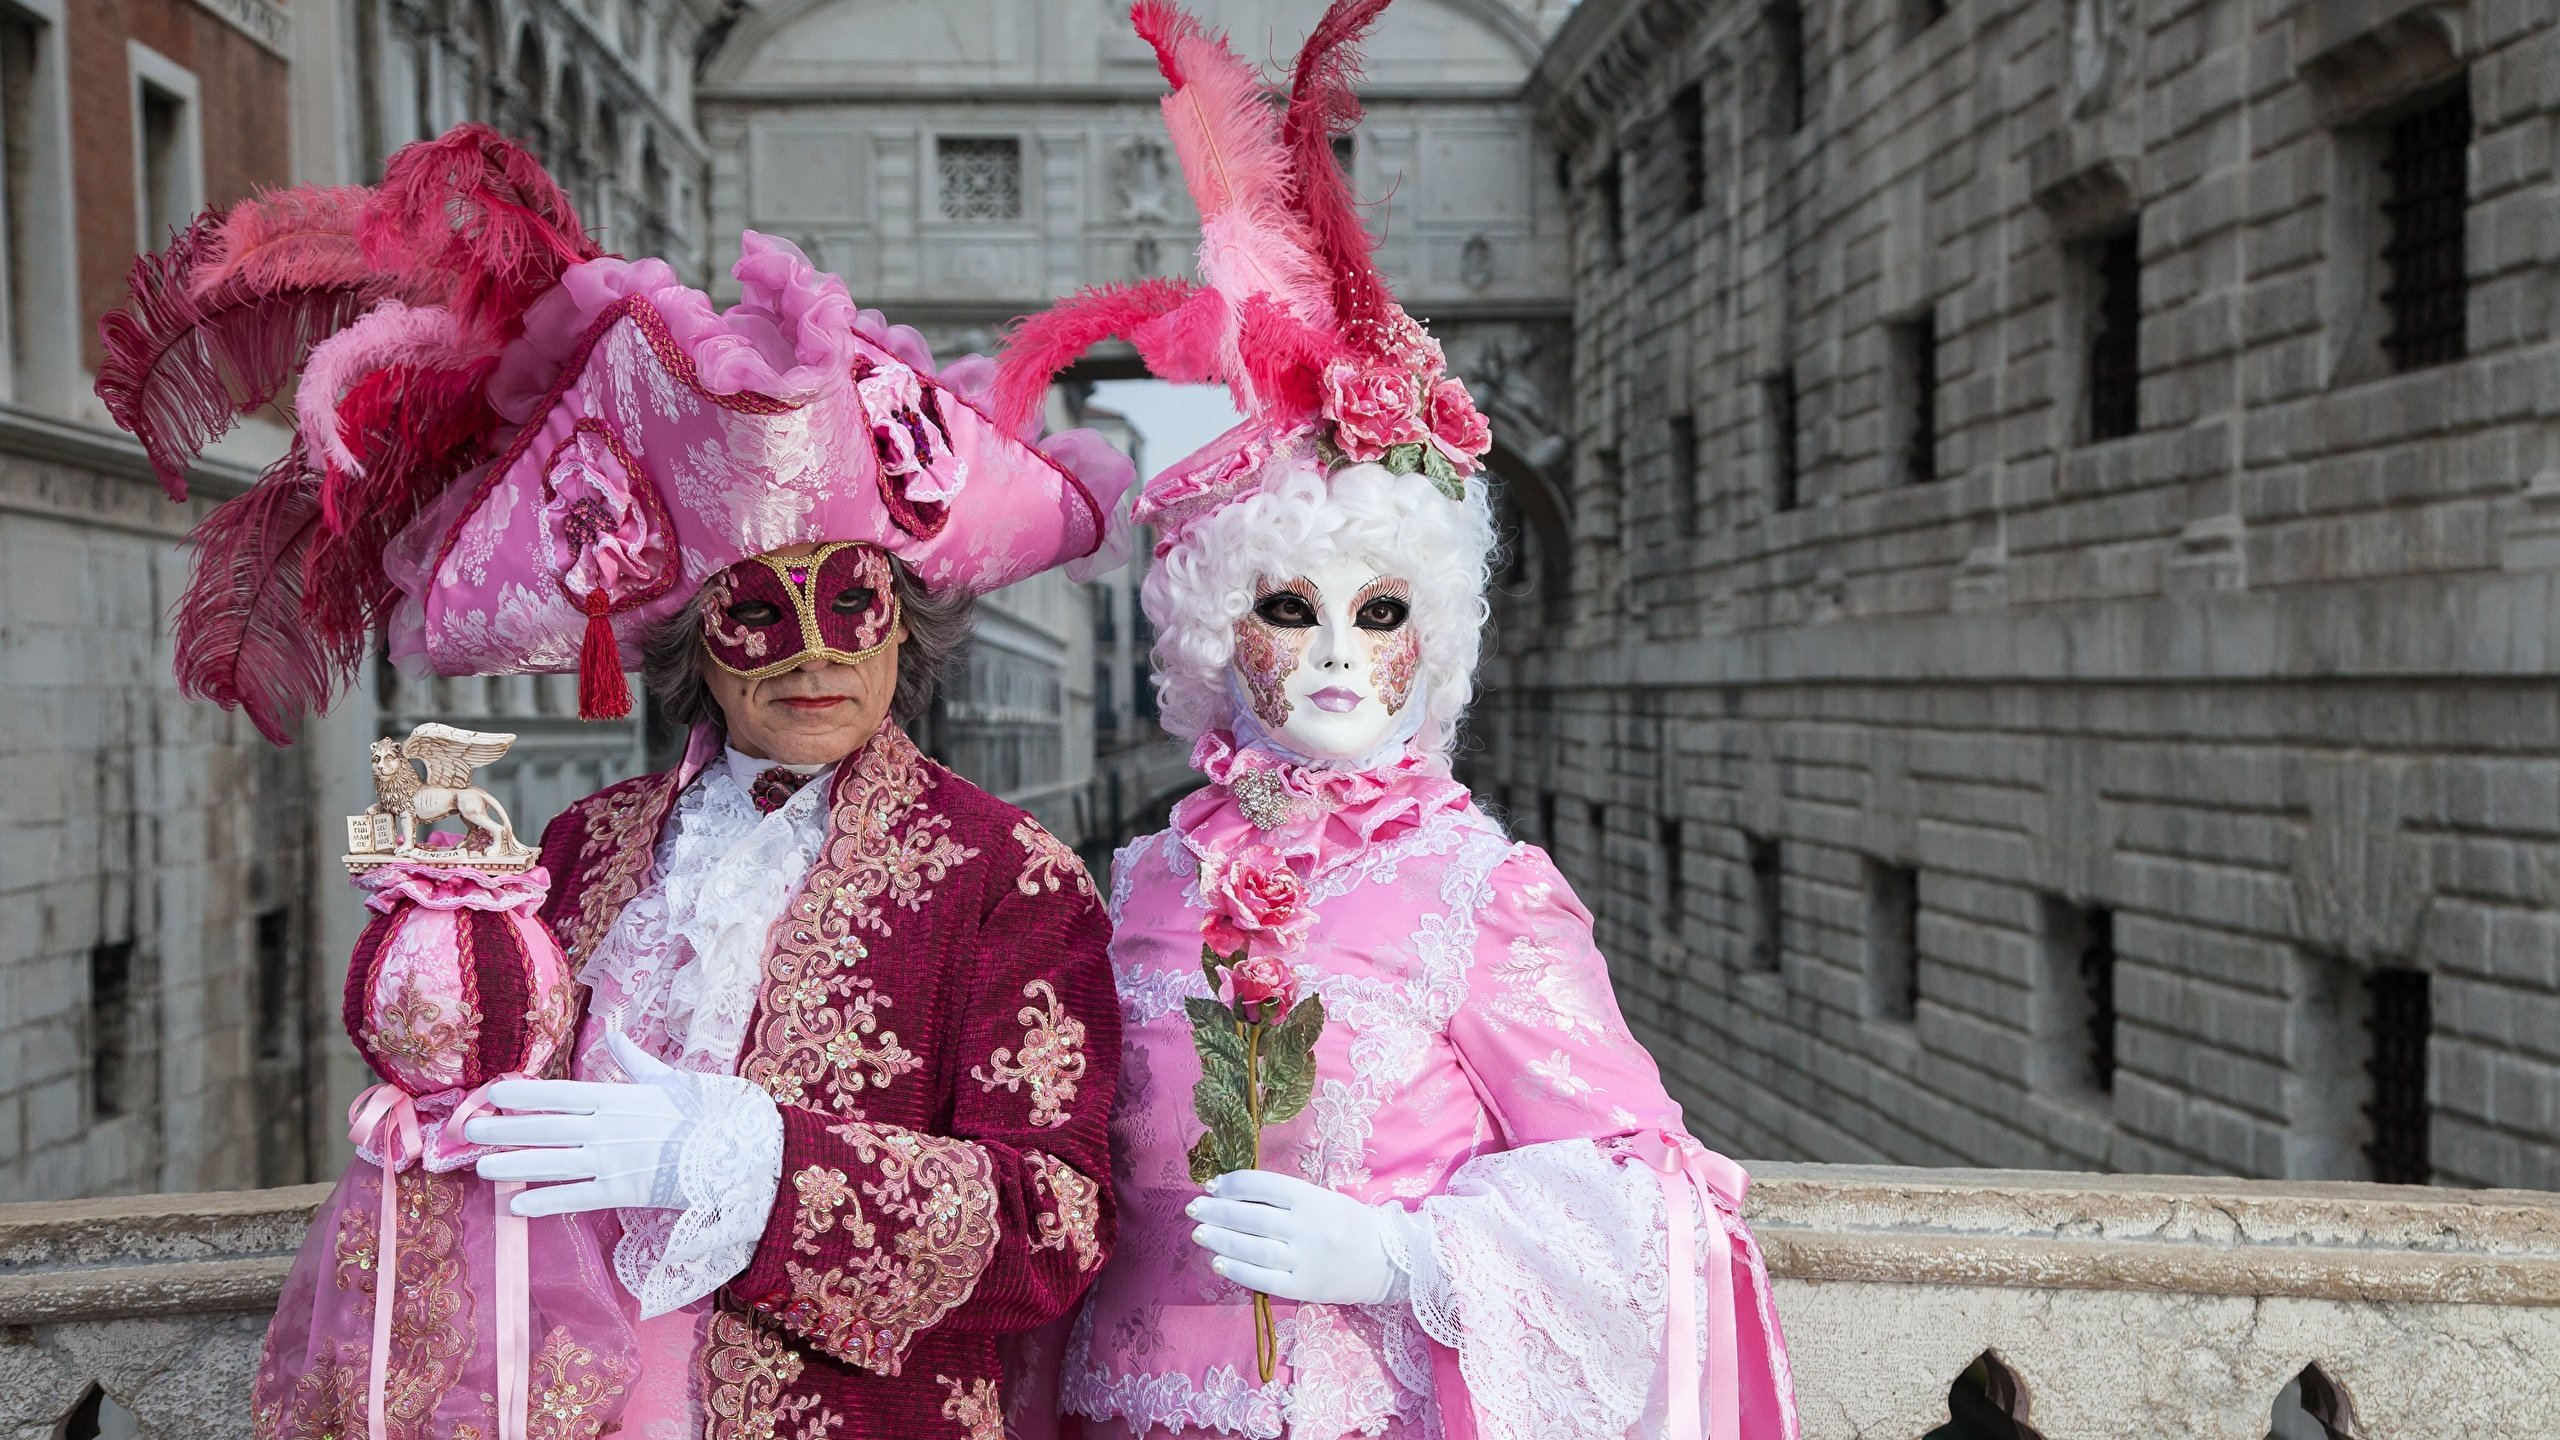 Wallpapers Venice Italy Men 2 Hat Feathers Masks Carnival 2560x1440